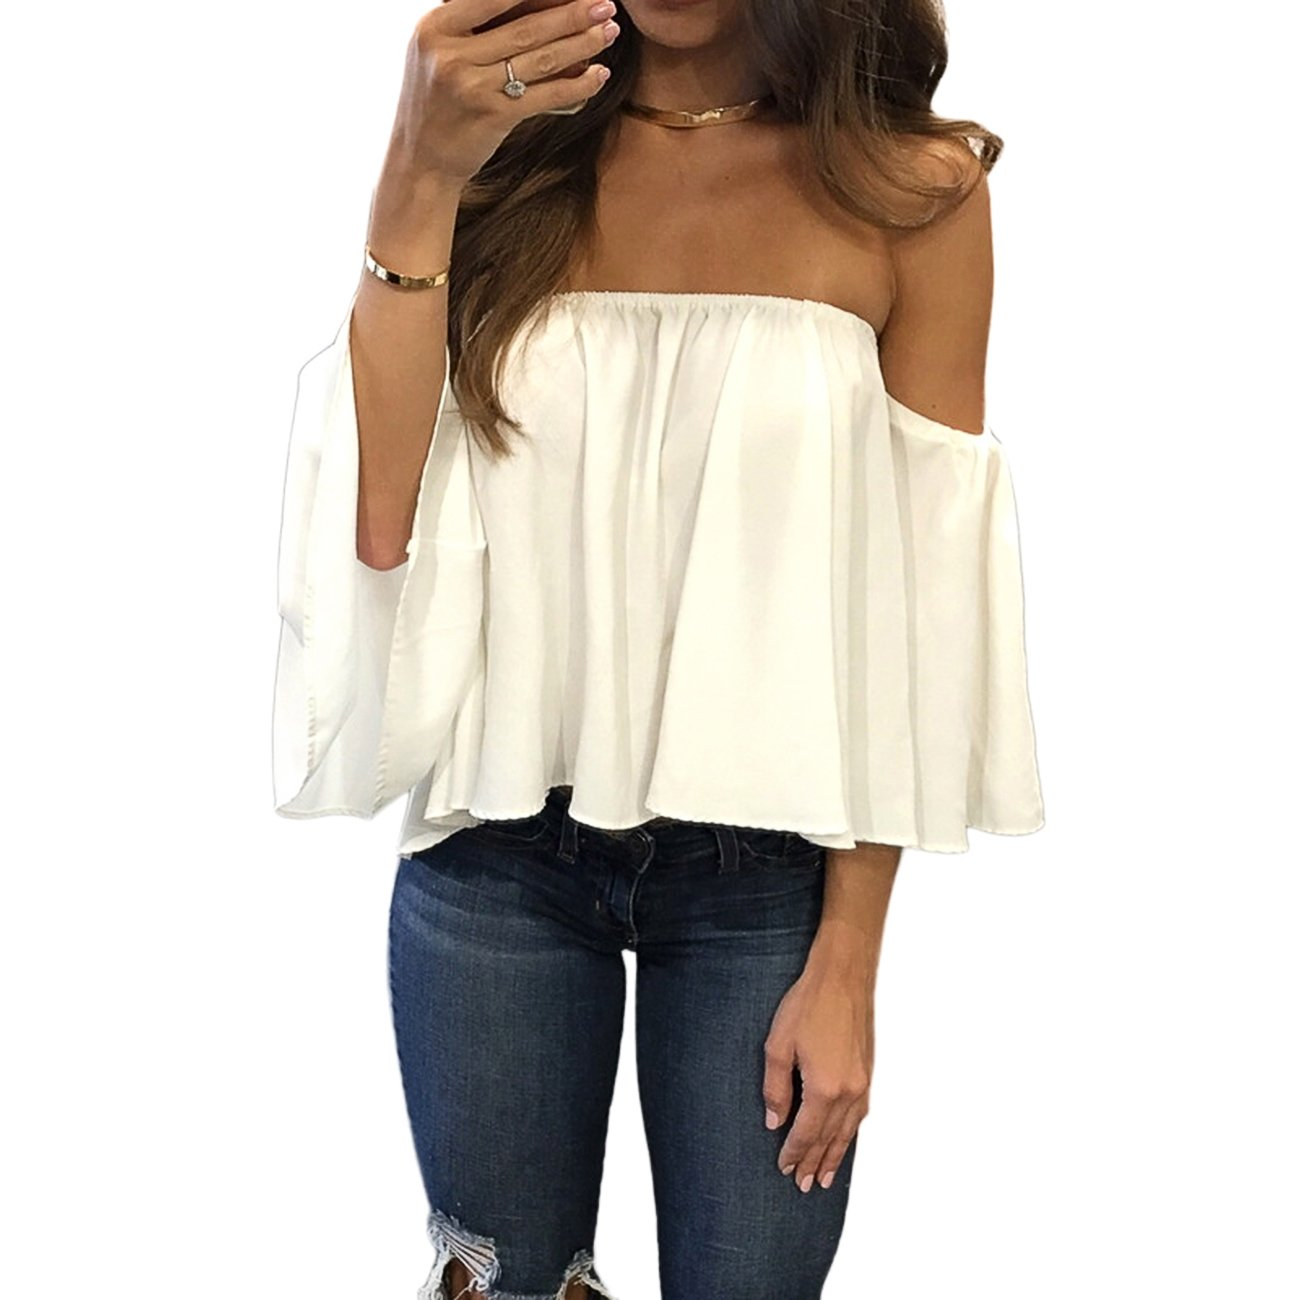 zdzdy Women Short Sleeve Off Shoulder Blouse Casual Pleated Ruffle Blouse Top Shirt(L,White)